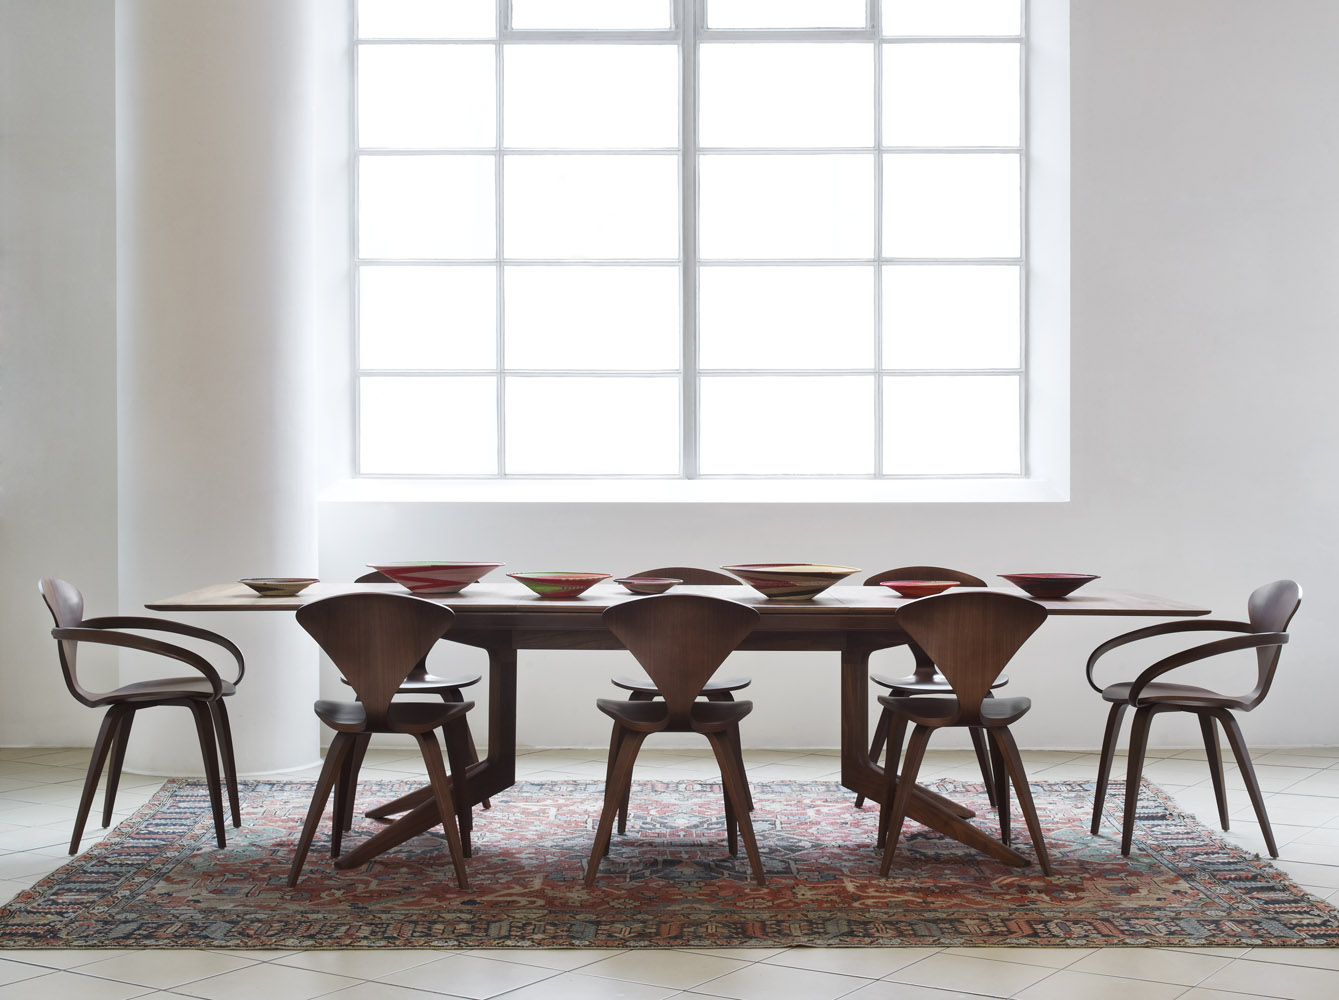 Conran Shop Whats Going On At Conran The Conran Blog & Conran Dining Table Gallery - Round Dining Room Tables